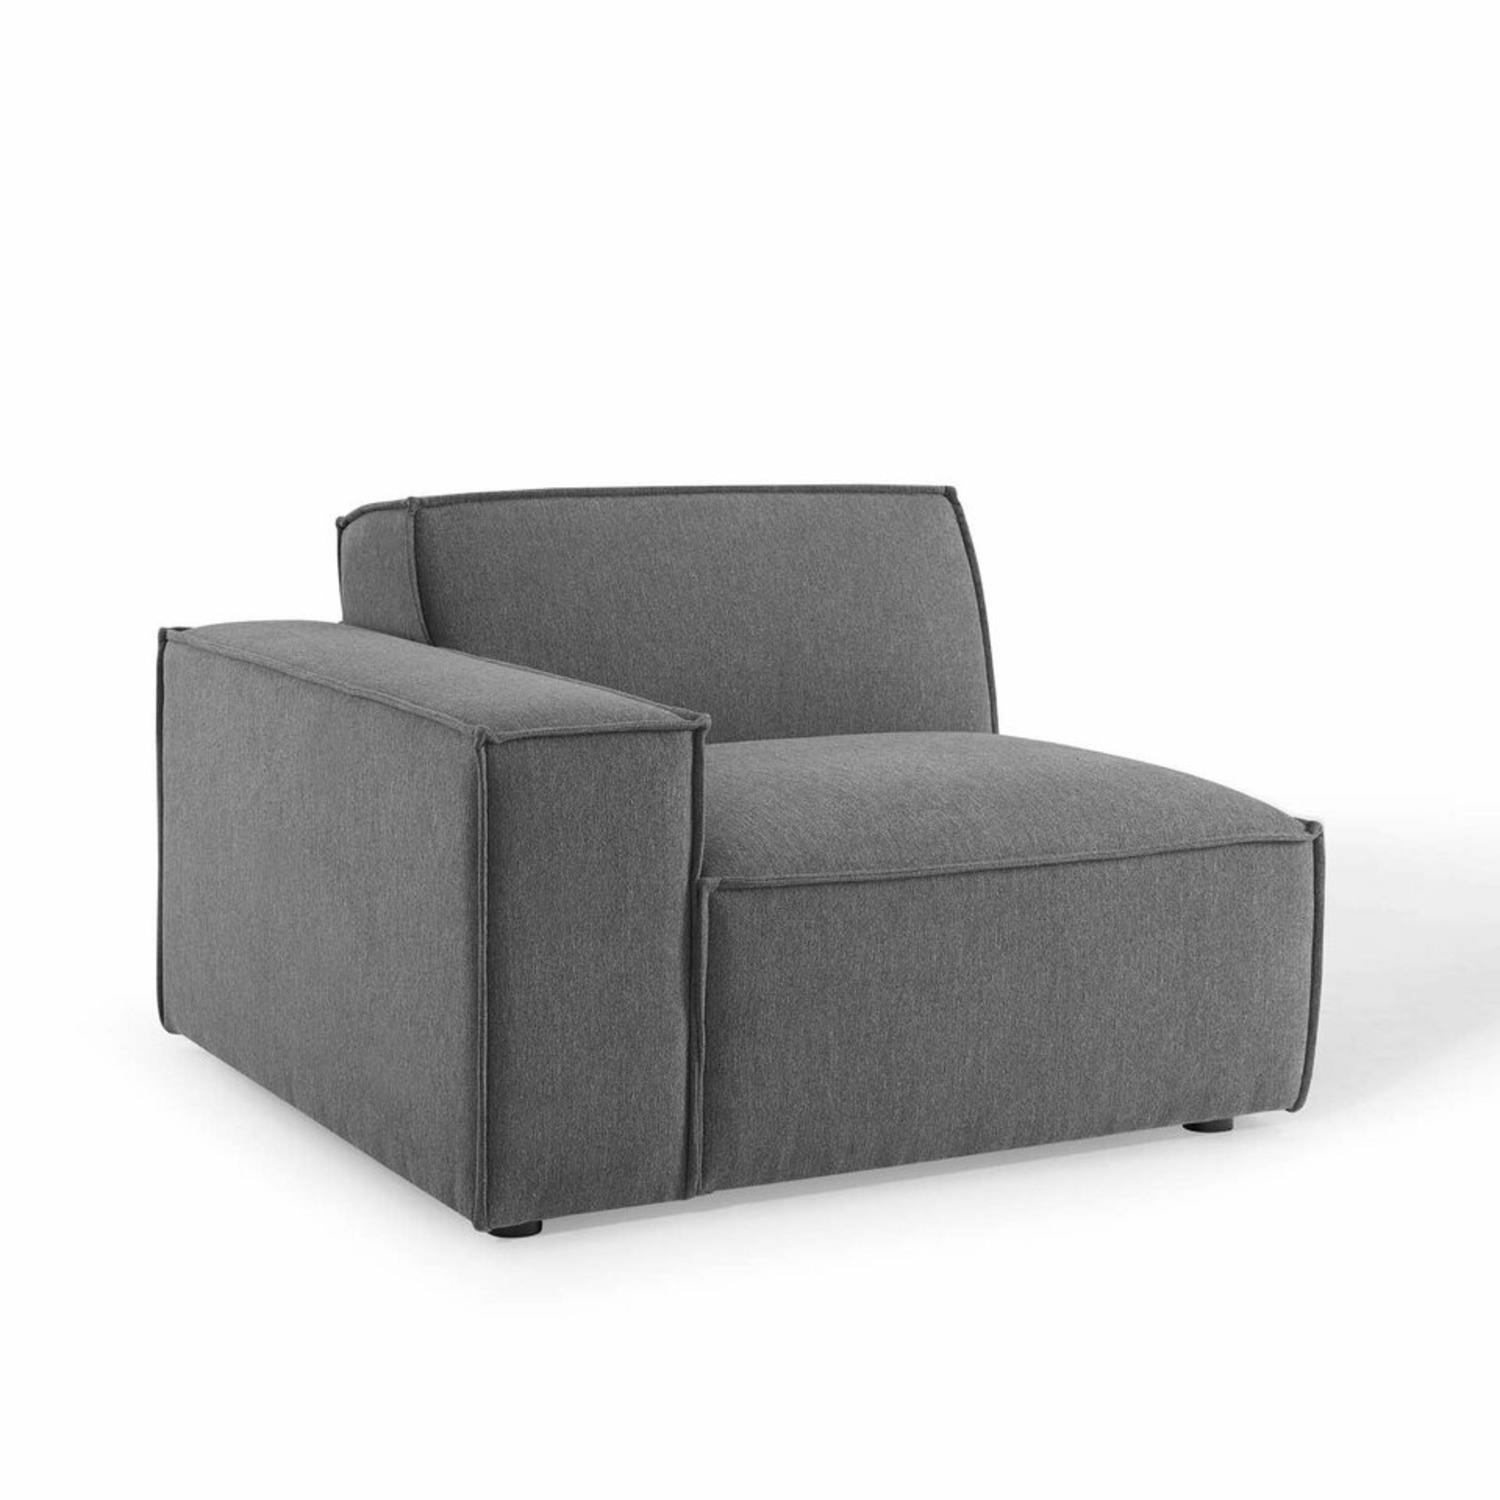 3-Piece Sectional Sofa In Charcoal Upholstery - image-5